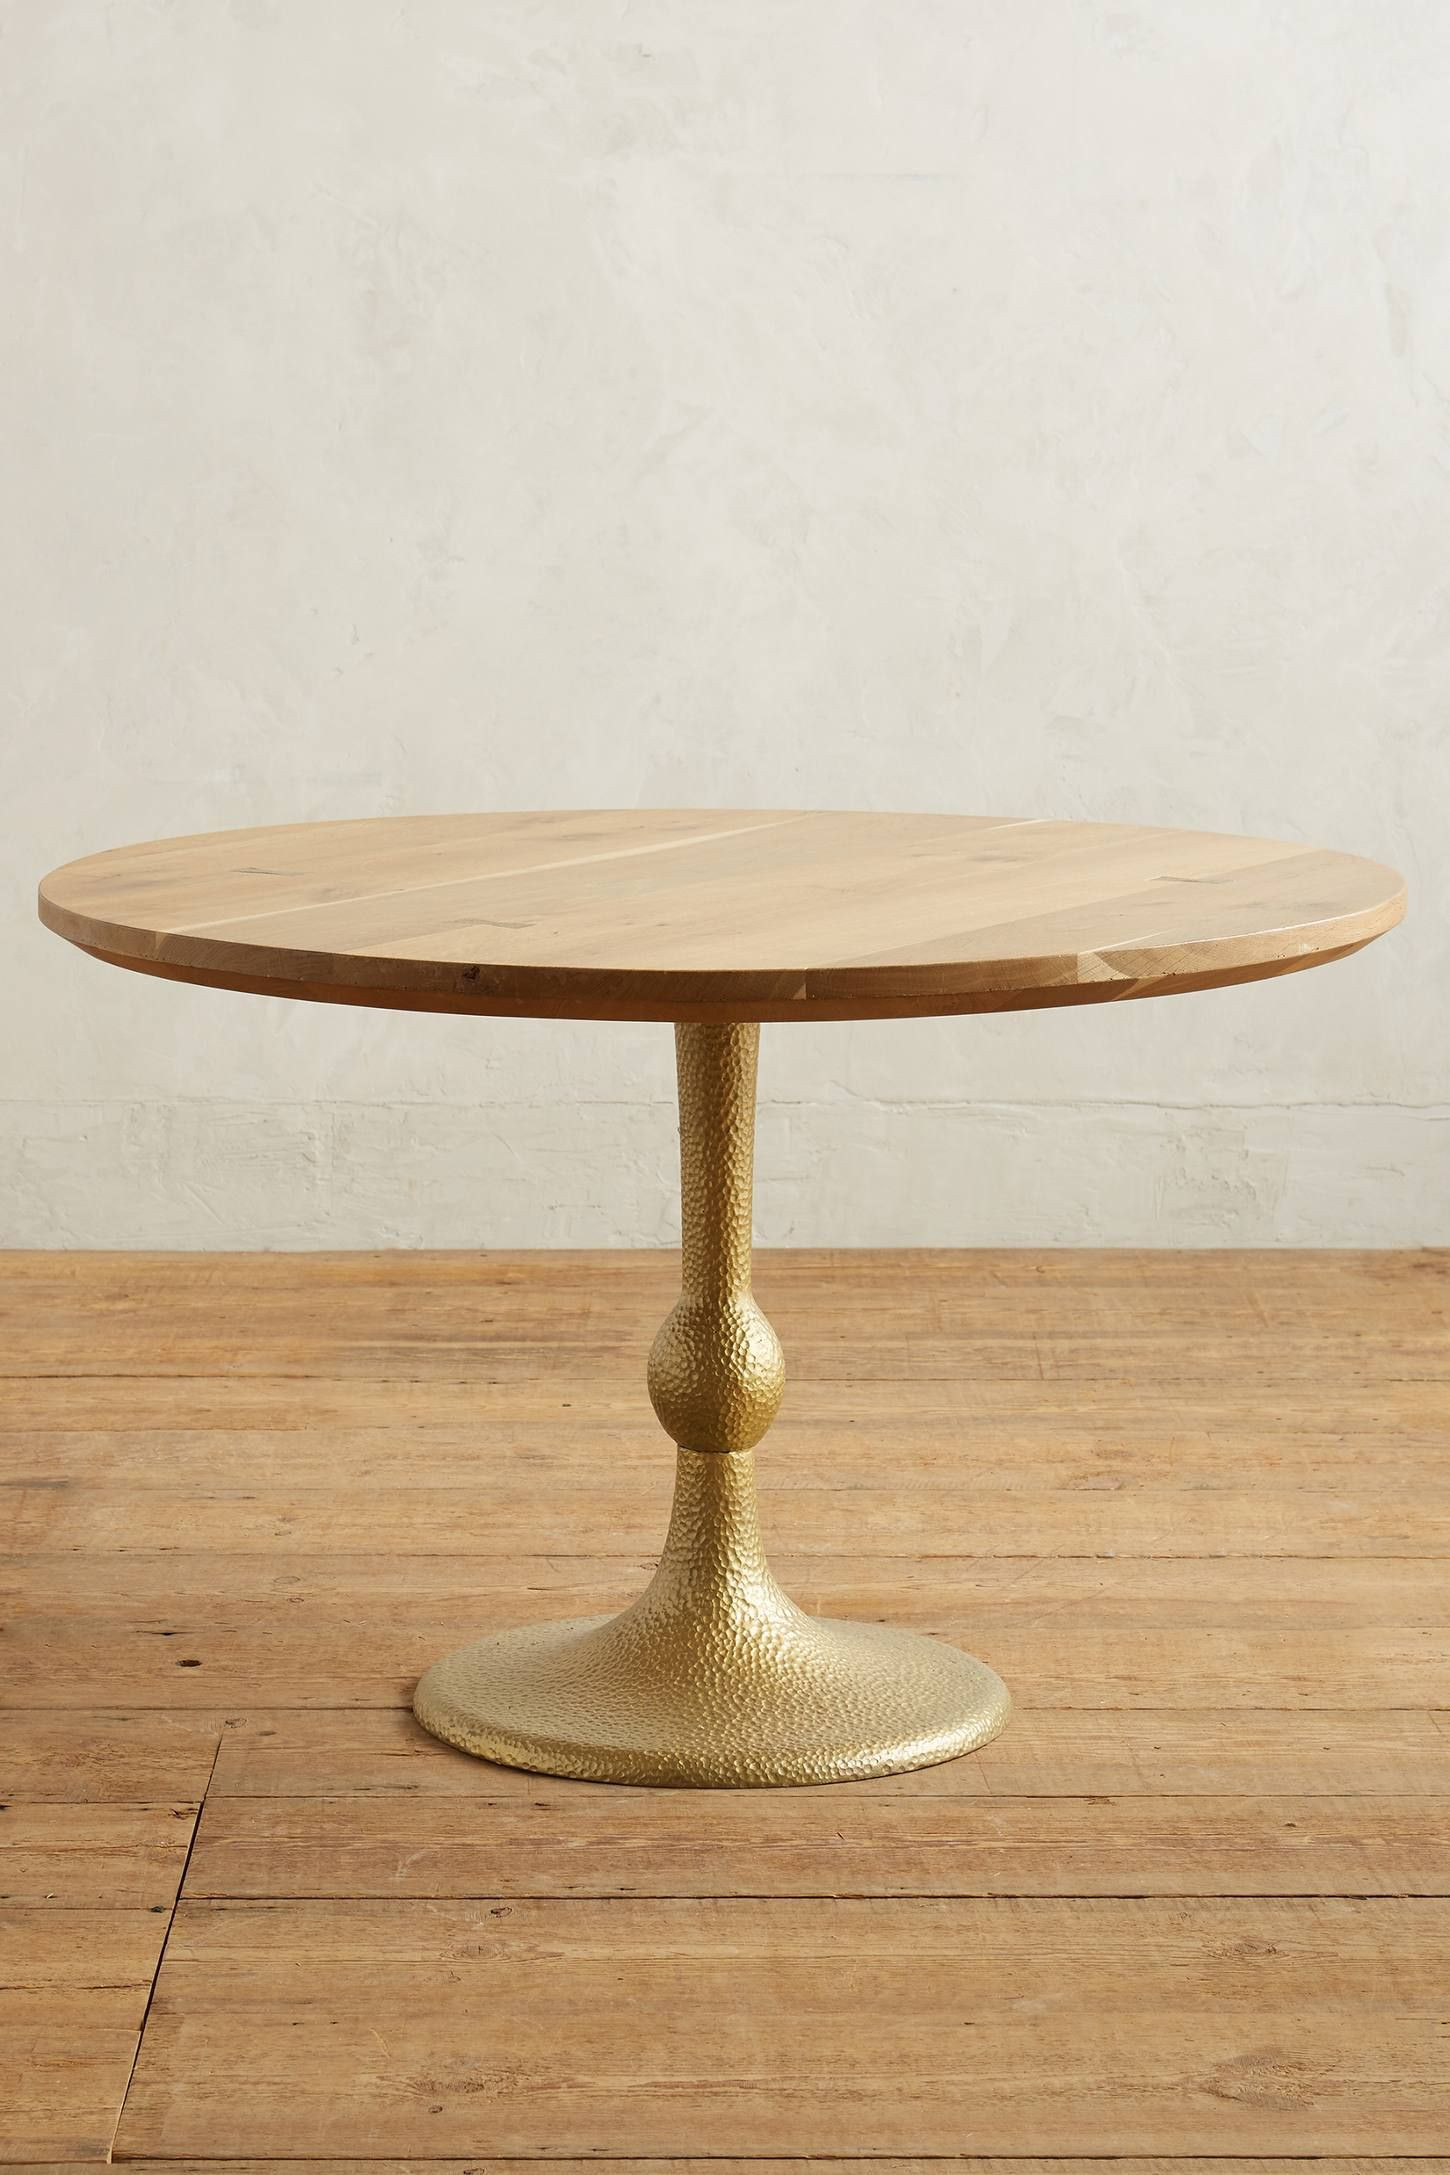 Slide View: 1: Tulipa Dining Table    HERE'S YOUR GOLD! :)